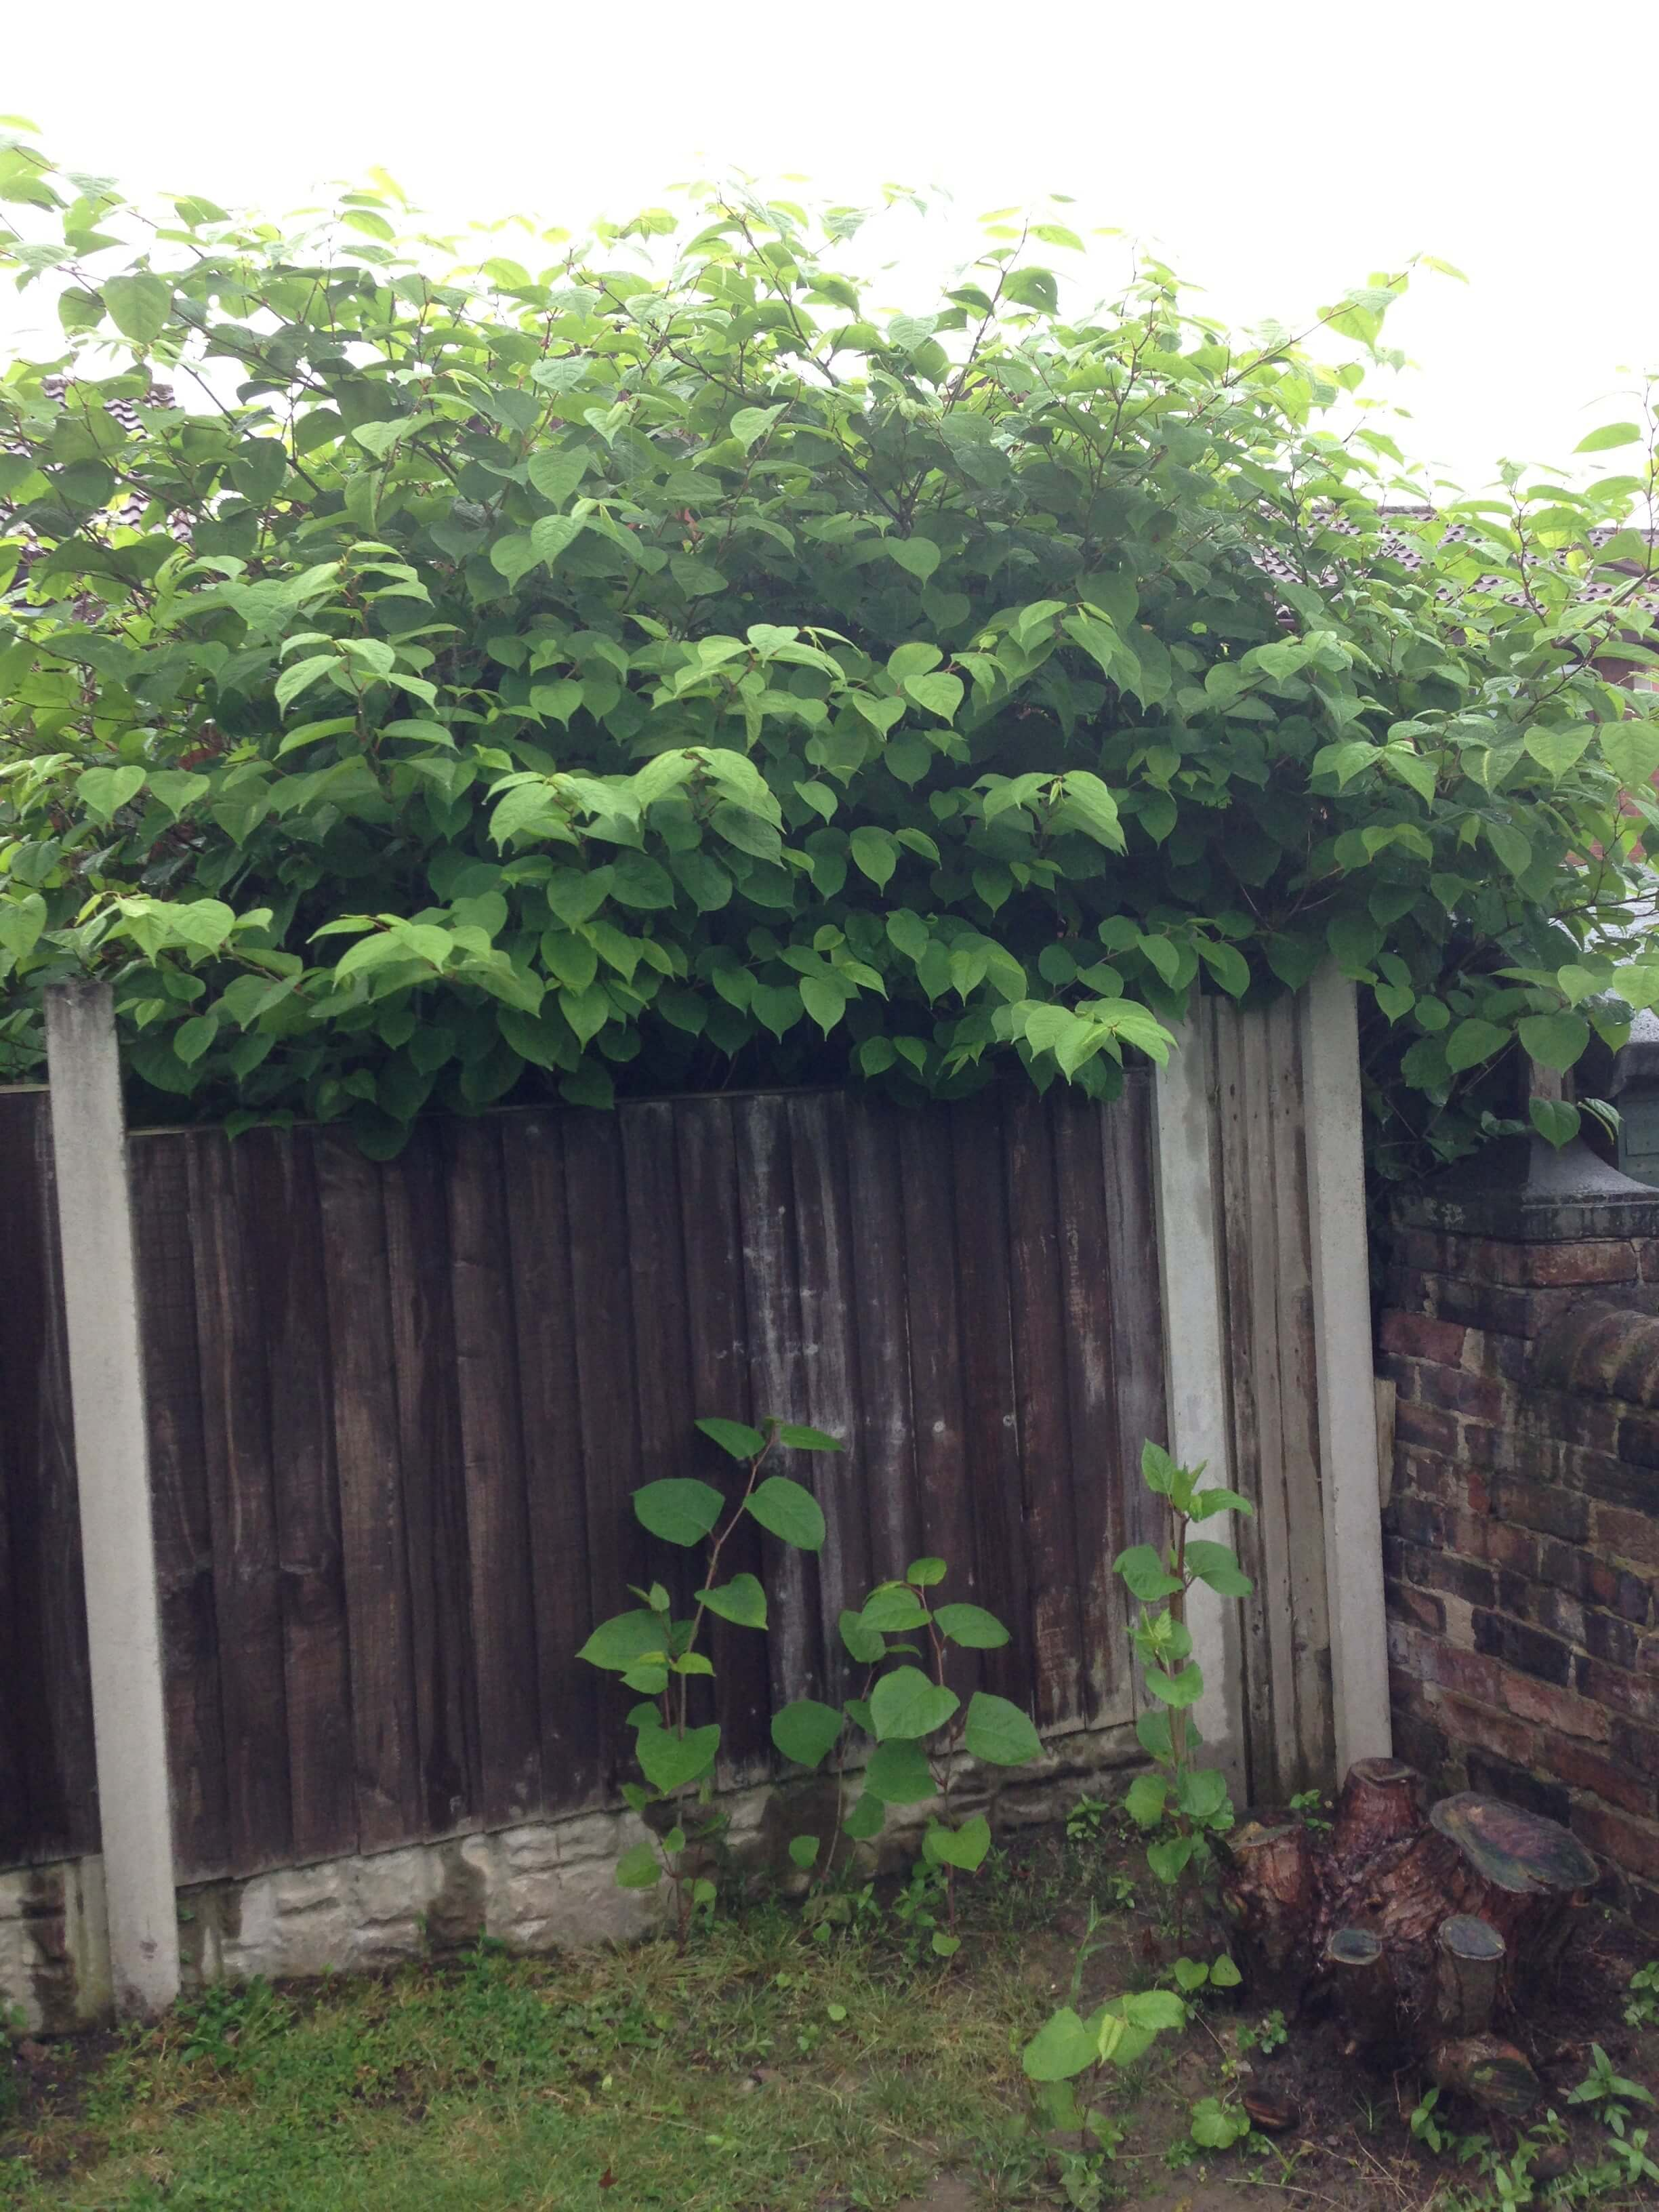 Removing Japanese Knotweed in Bury Mount